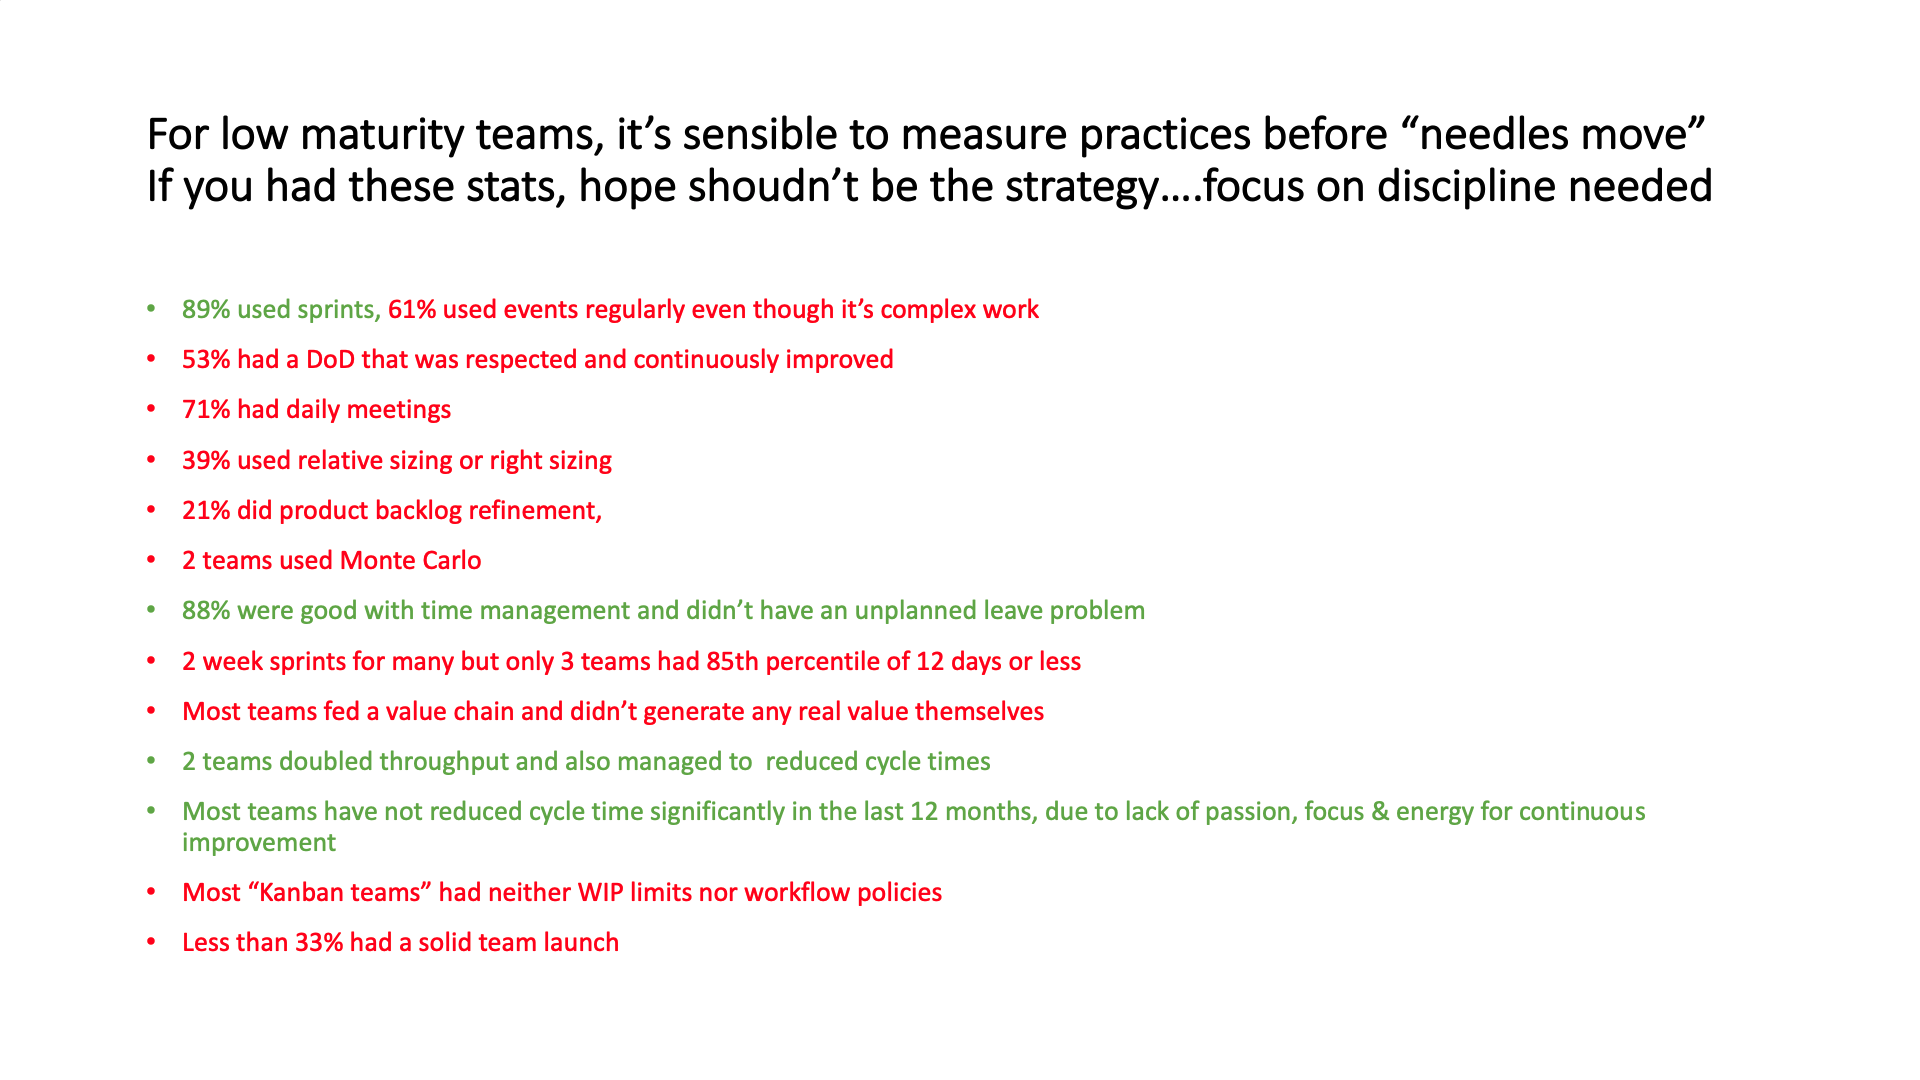 Measurement of practices